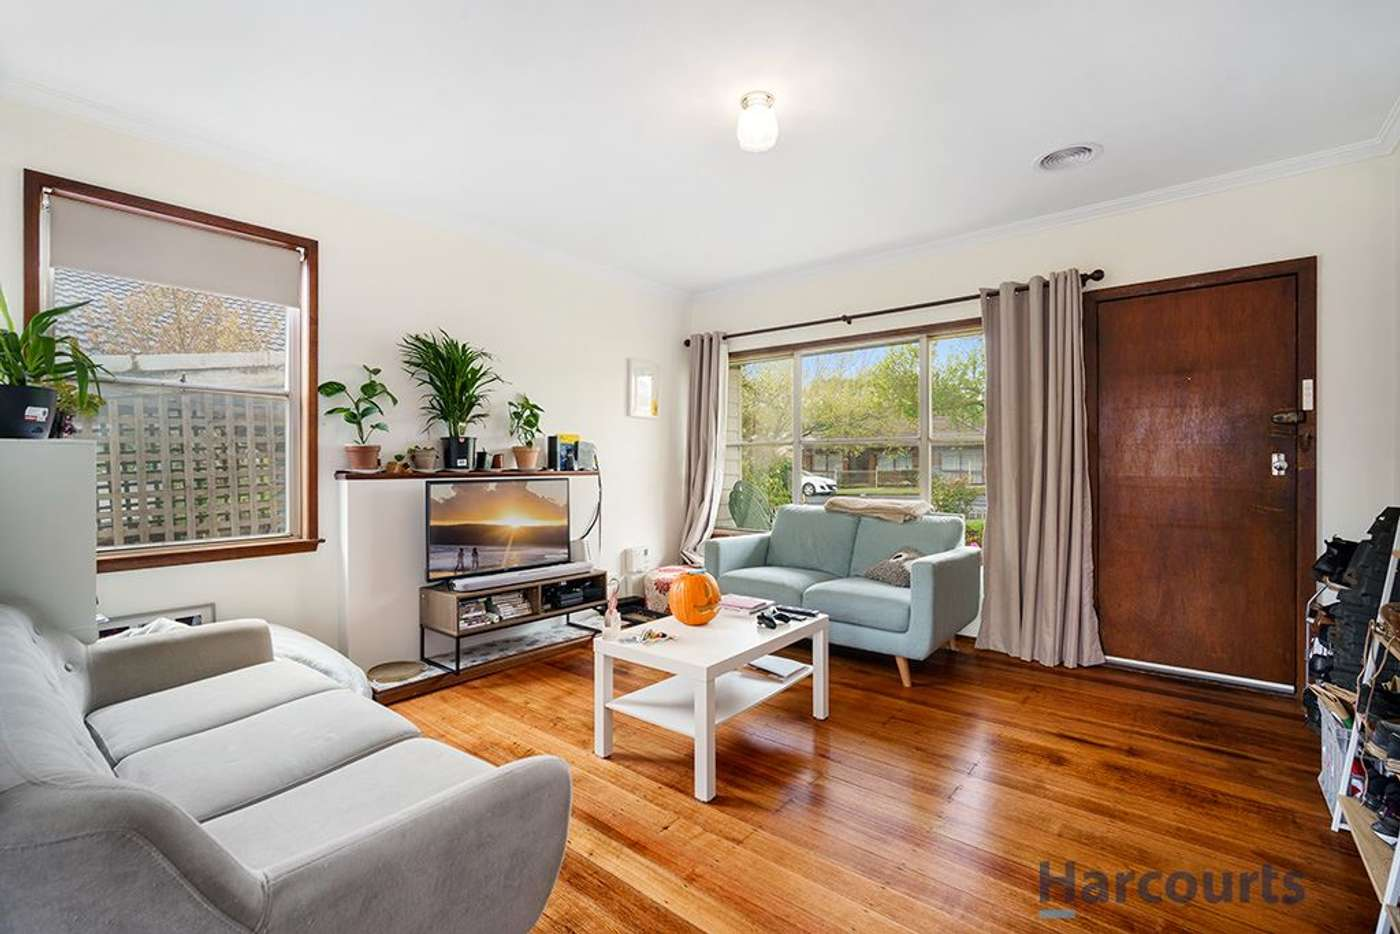 Fifth view of Homely house listing, 501 York Street, Ballarat East VIC 3350